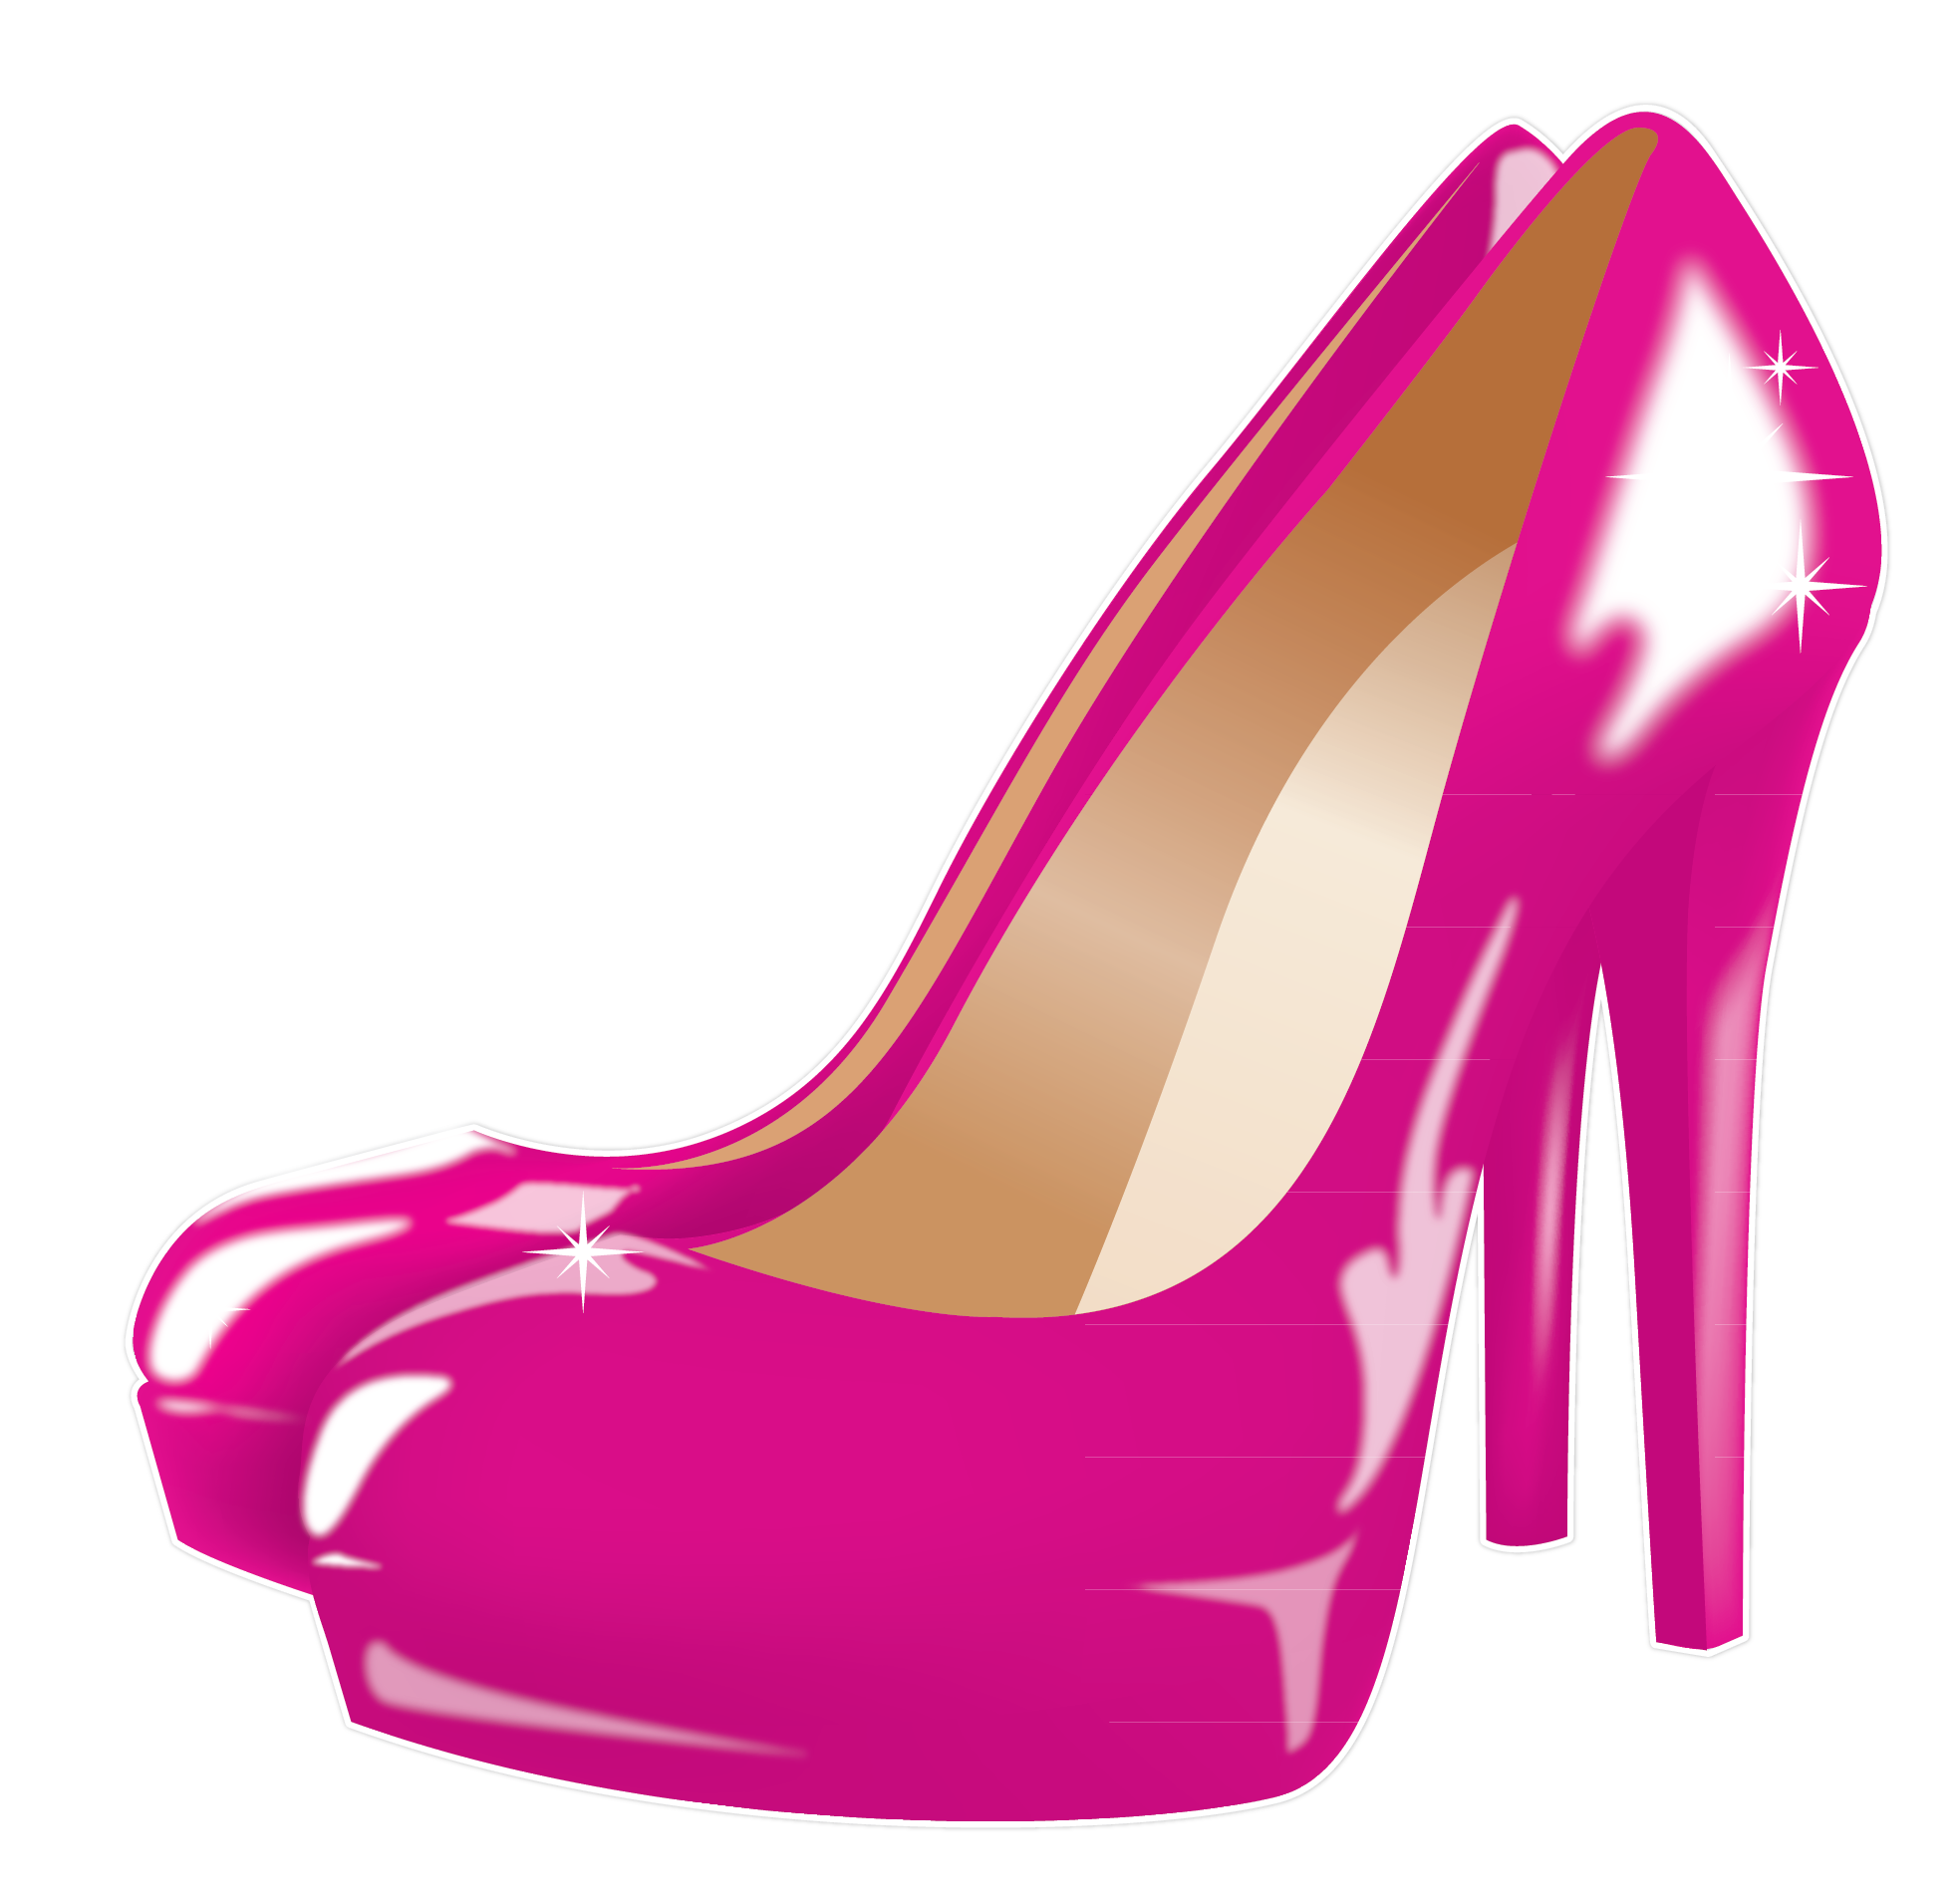 High heels and heels on cliparts